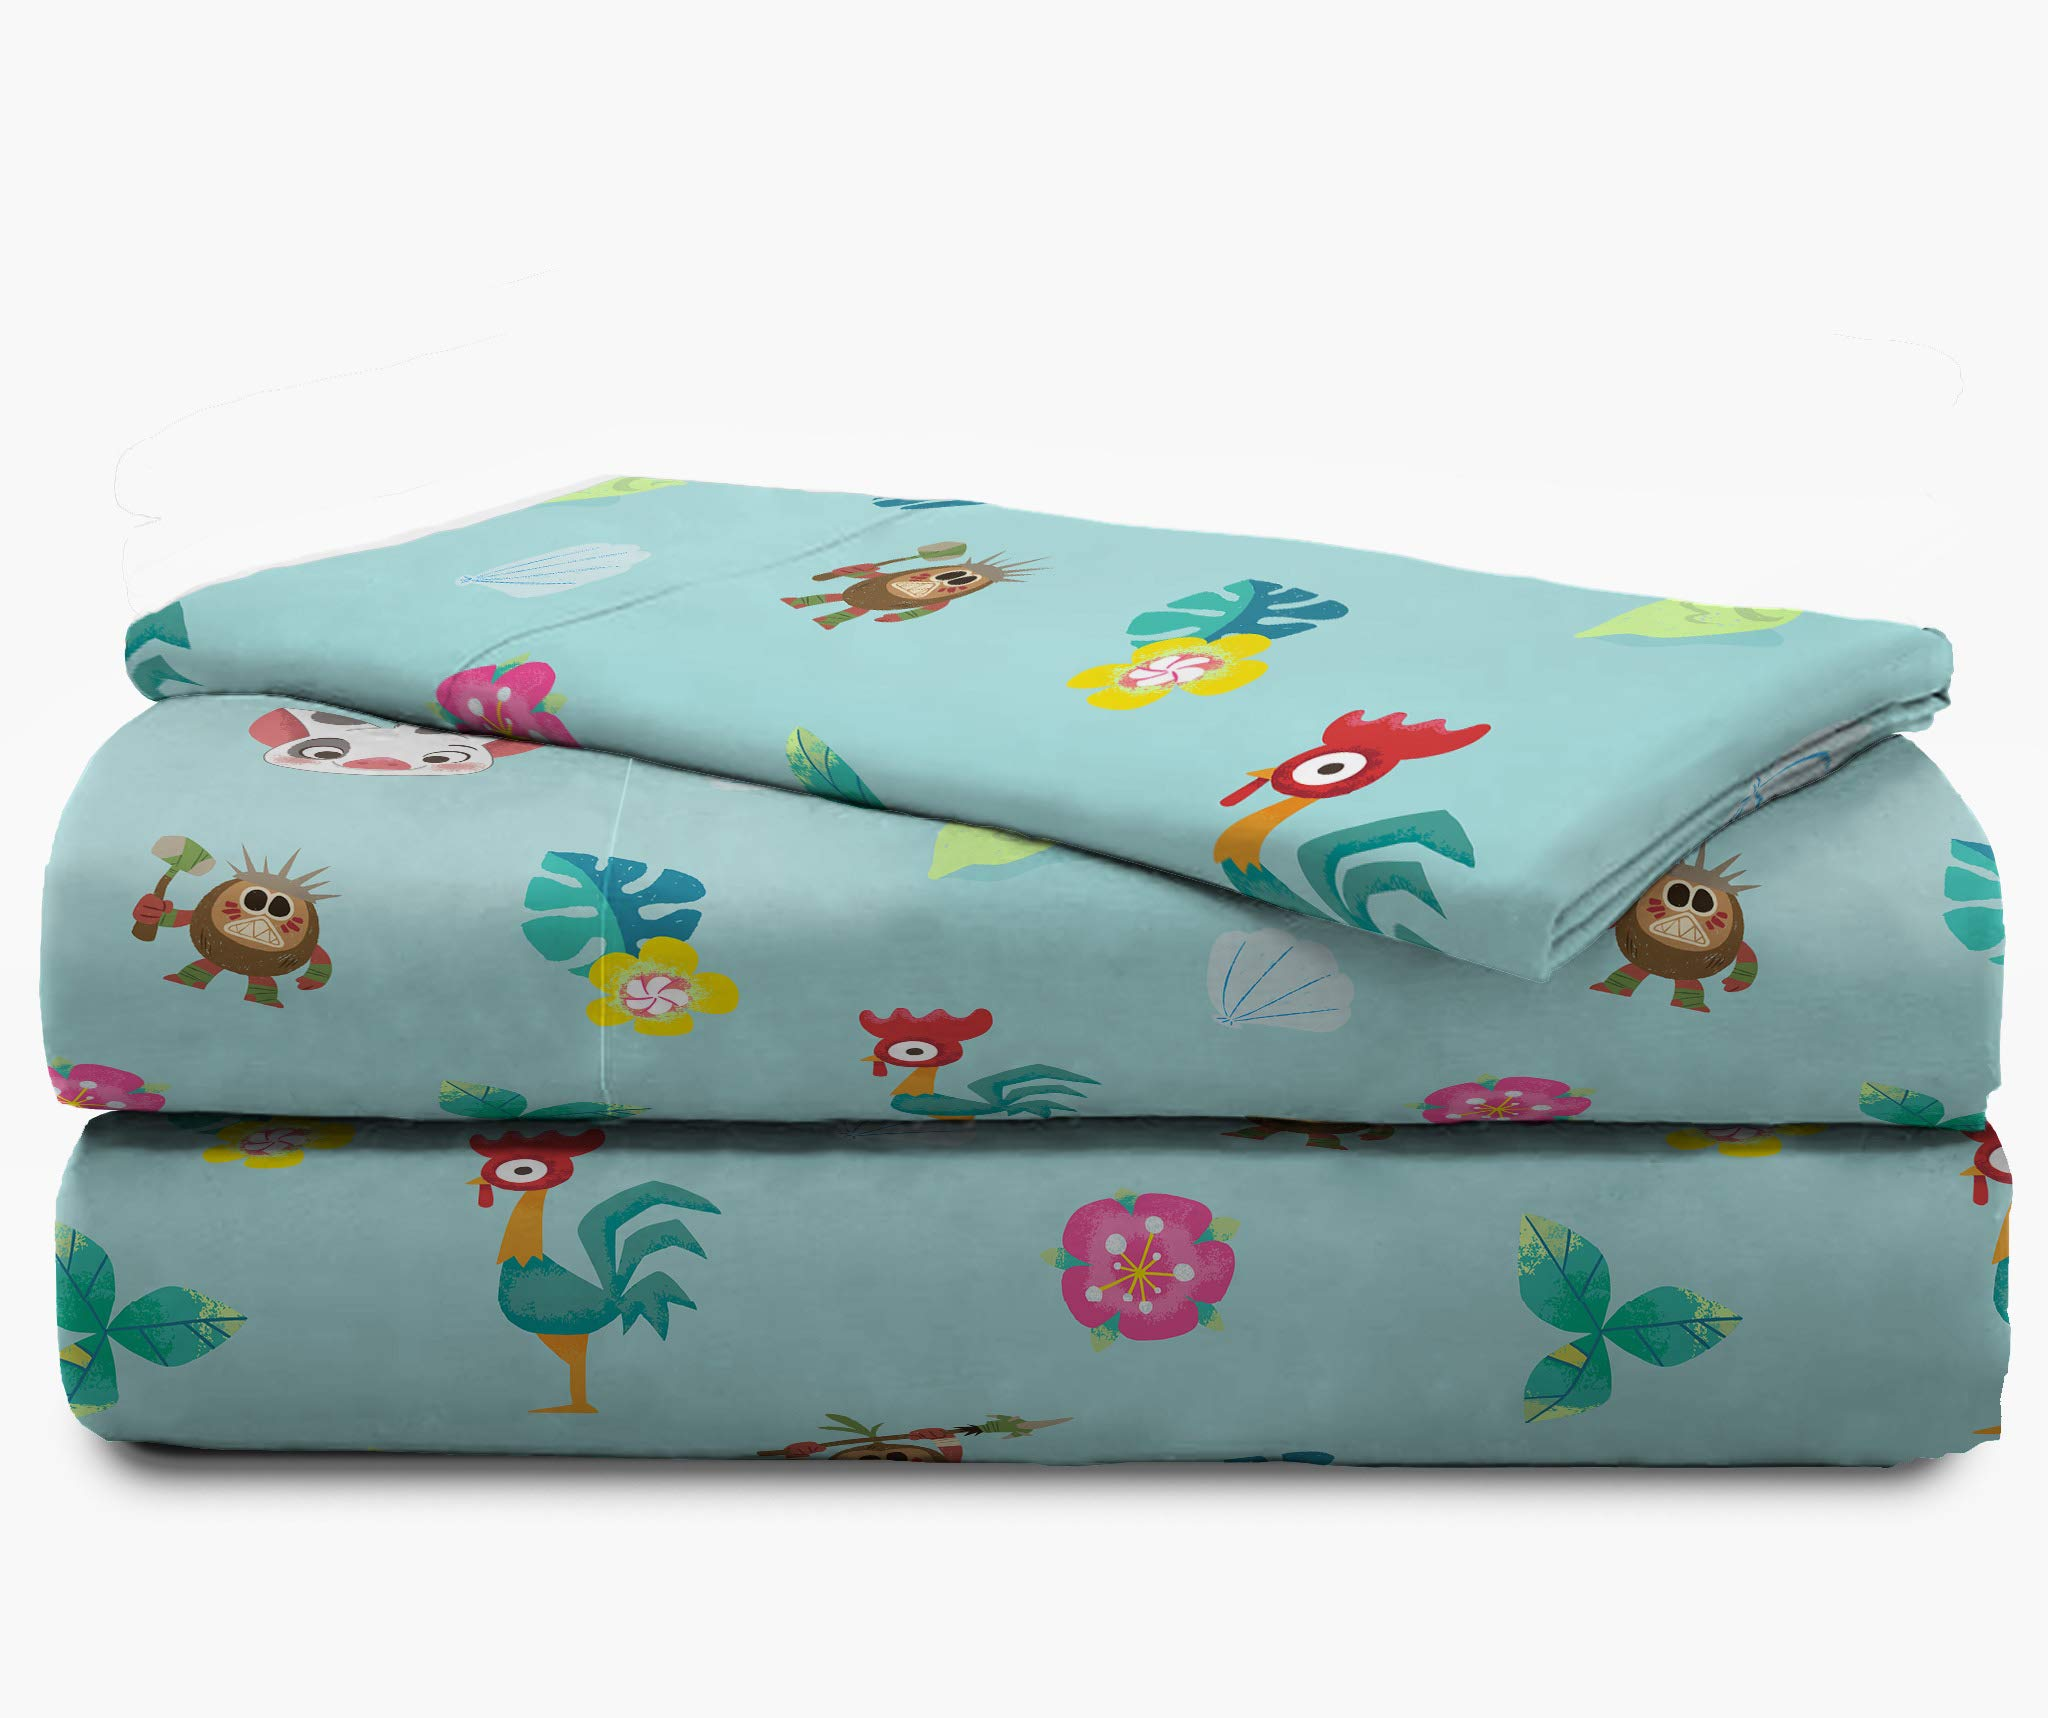 Jay Franco Disney Moana Flower Power 4 Piece Twin Bed Set - Includes Reversible Comforter & Sheet Set - Super Soft Fade Resistant Polyester - (Official Disney Product) by Jay Franco (Image #4)